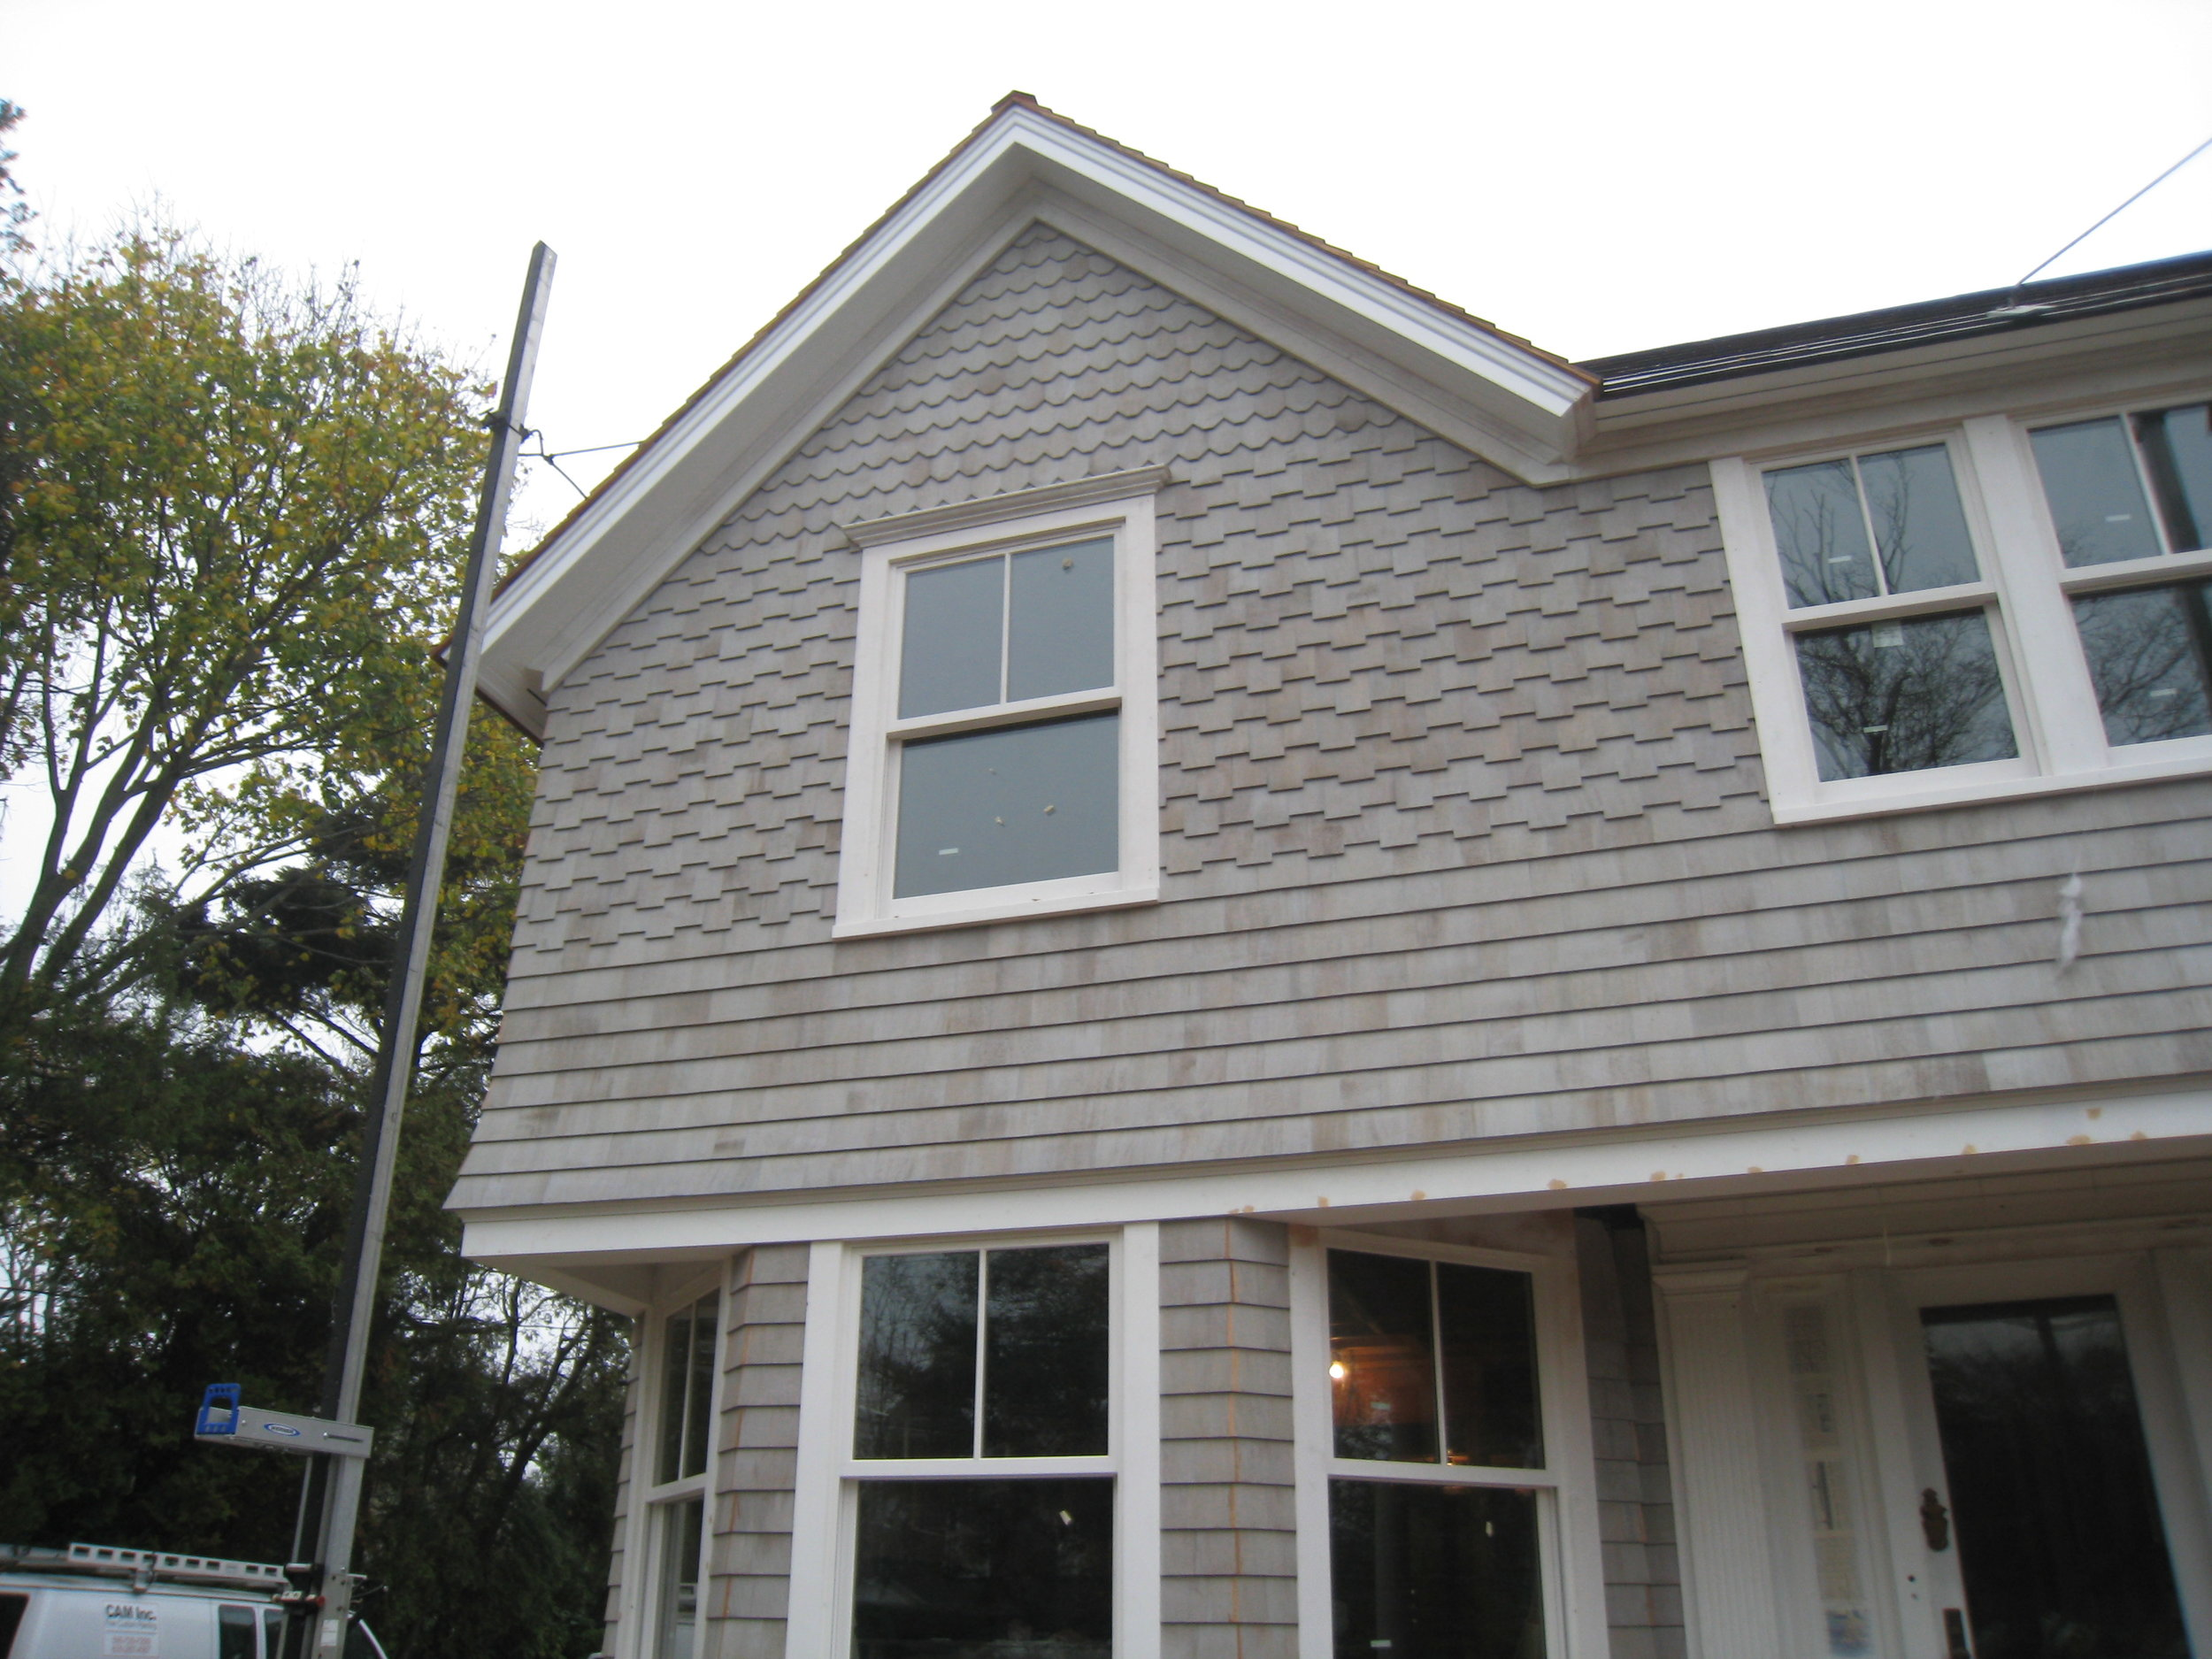 siding and gutters-02.jpg